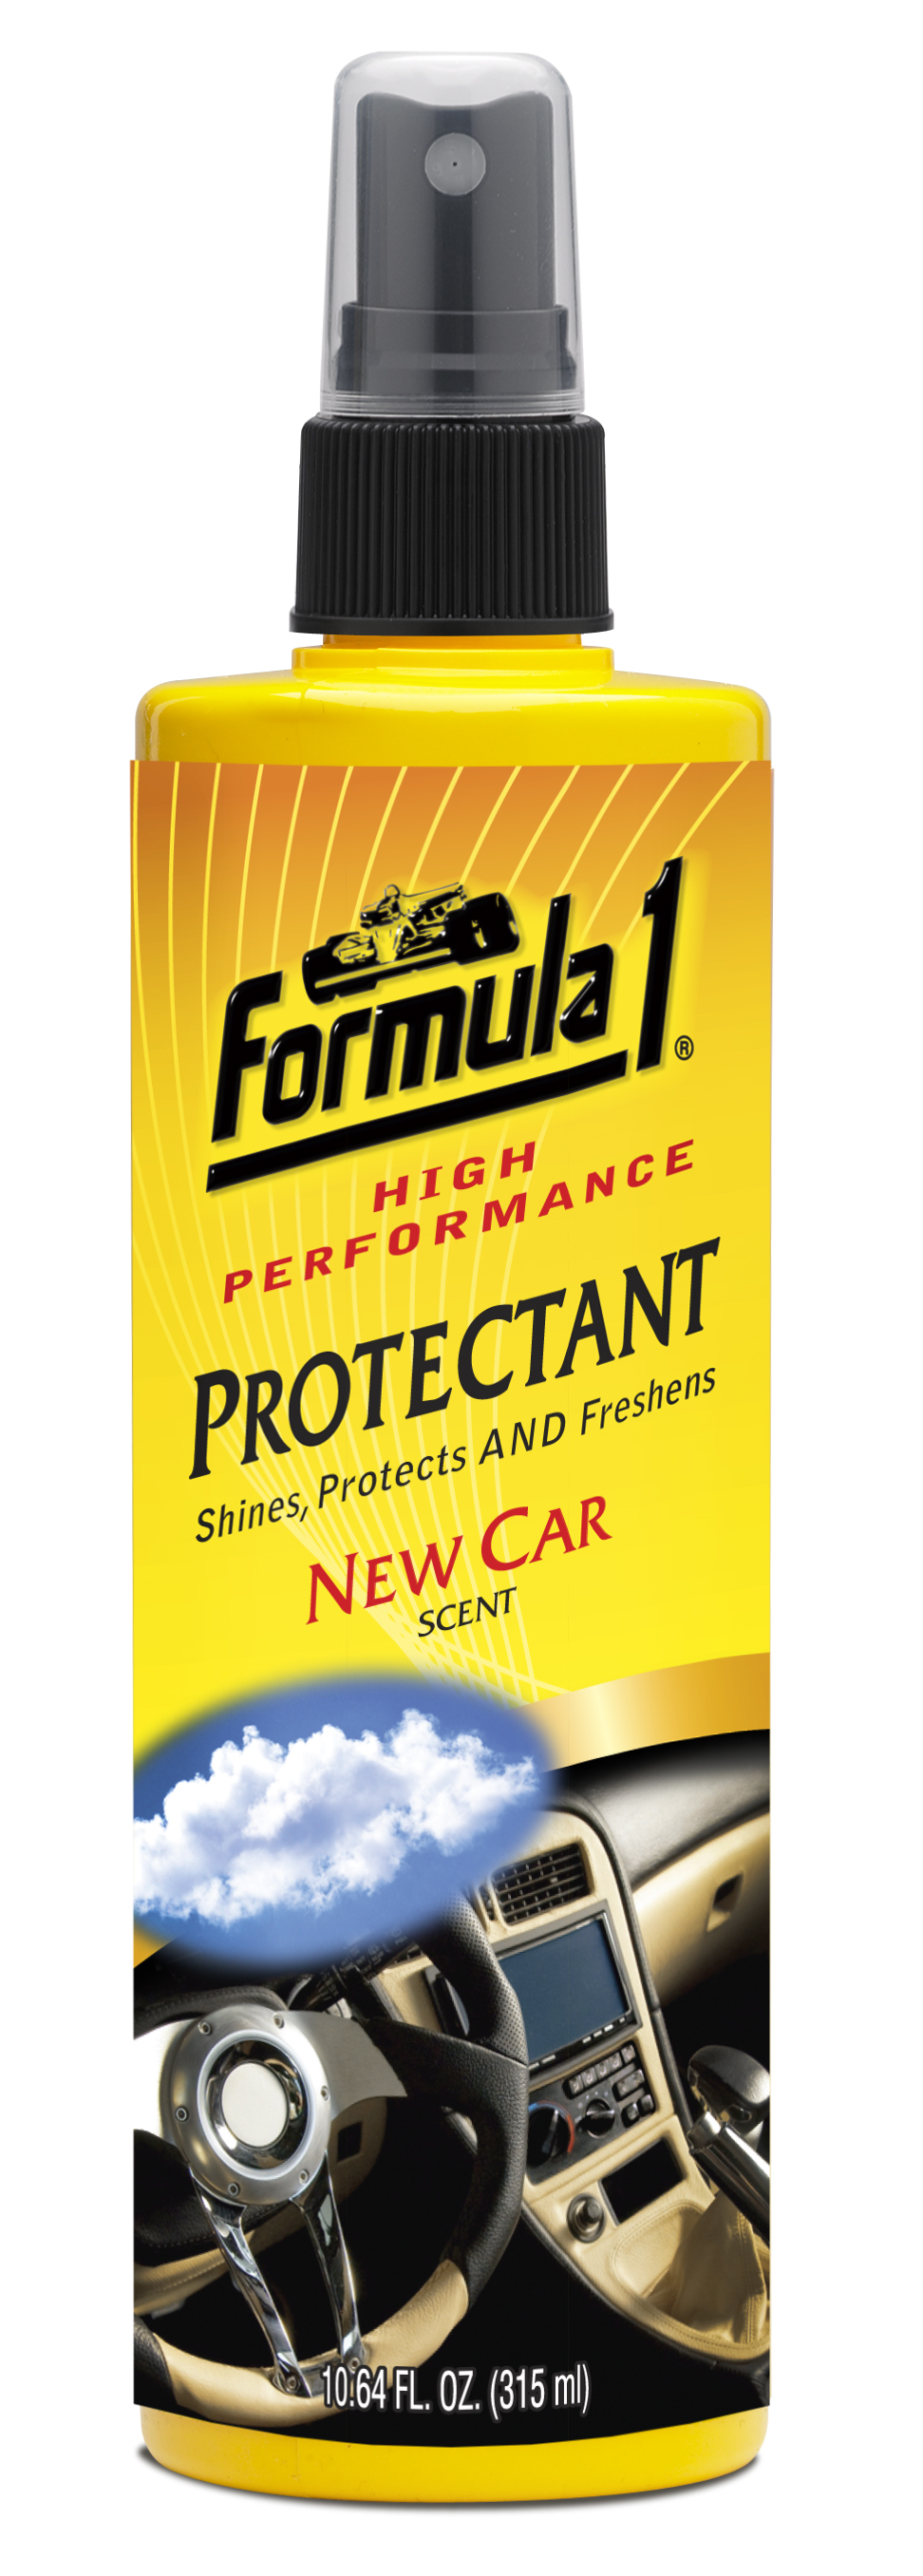 Protectant New Car Image